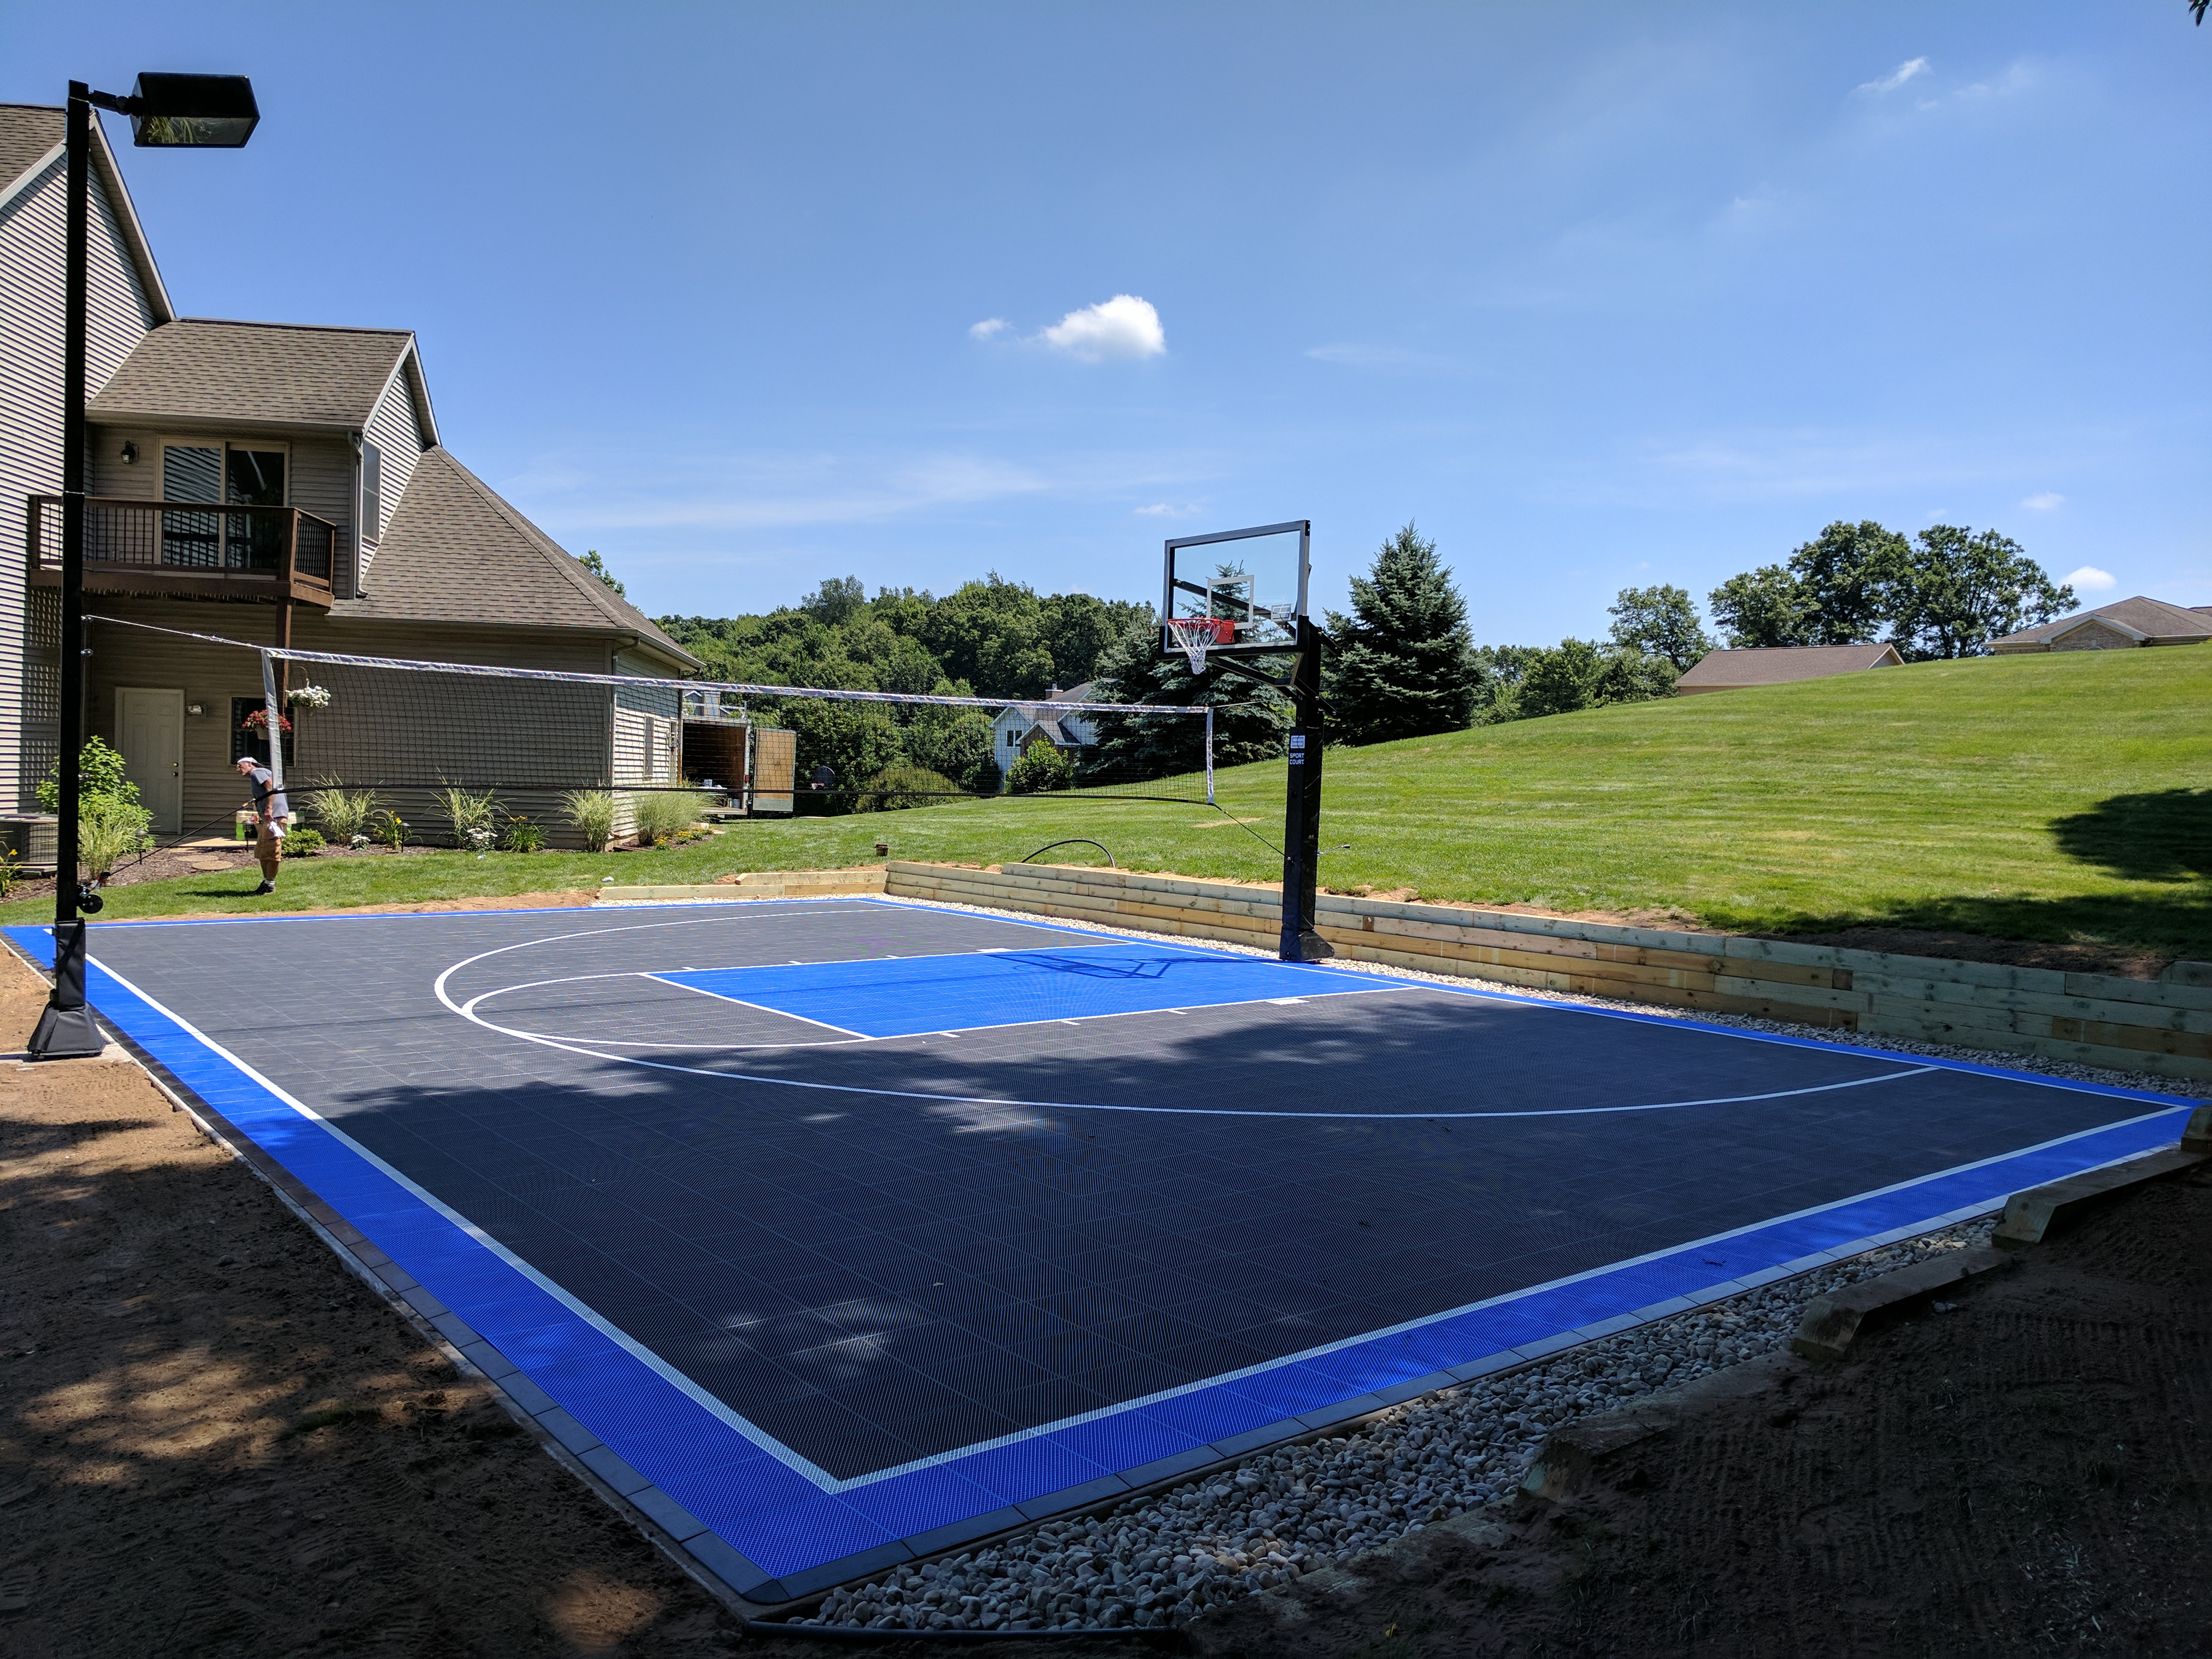 What to build in your backyard amazing luxury home design for How much does it cost to build a sport court